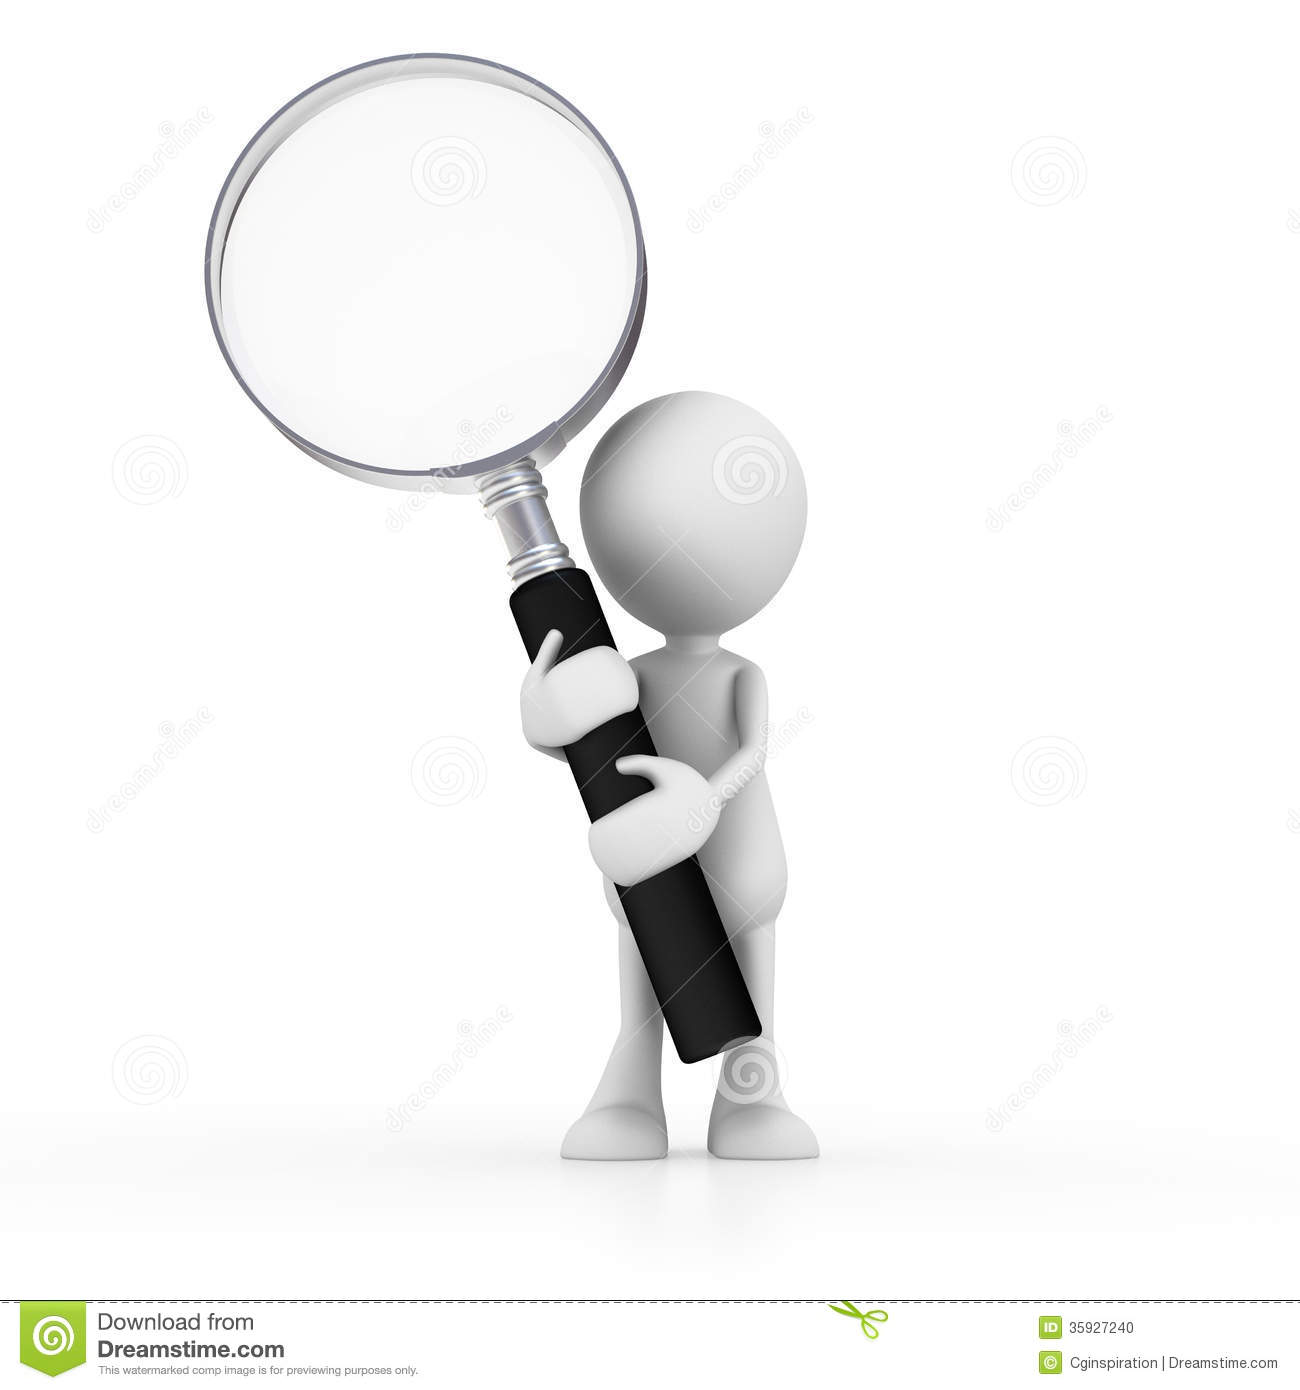 Magnifying glass man. Clipart person station